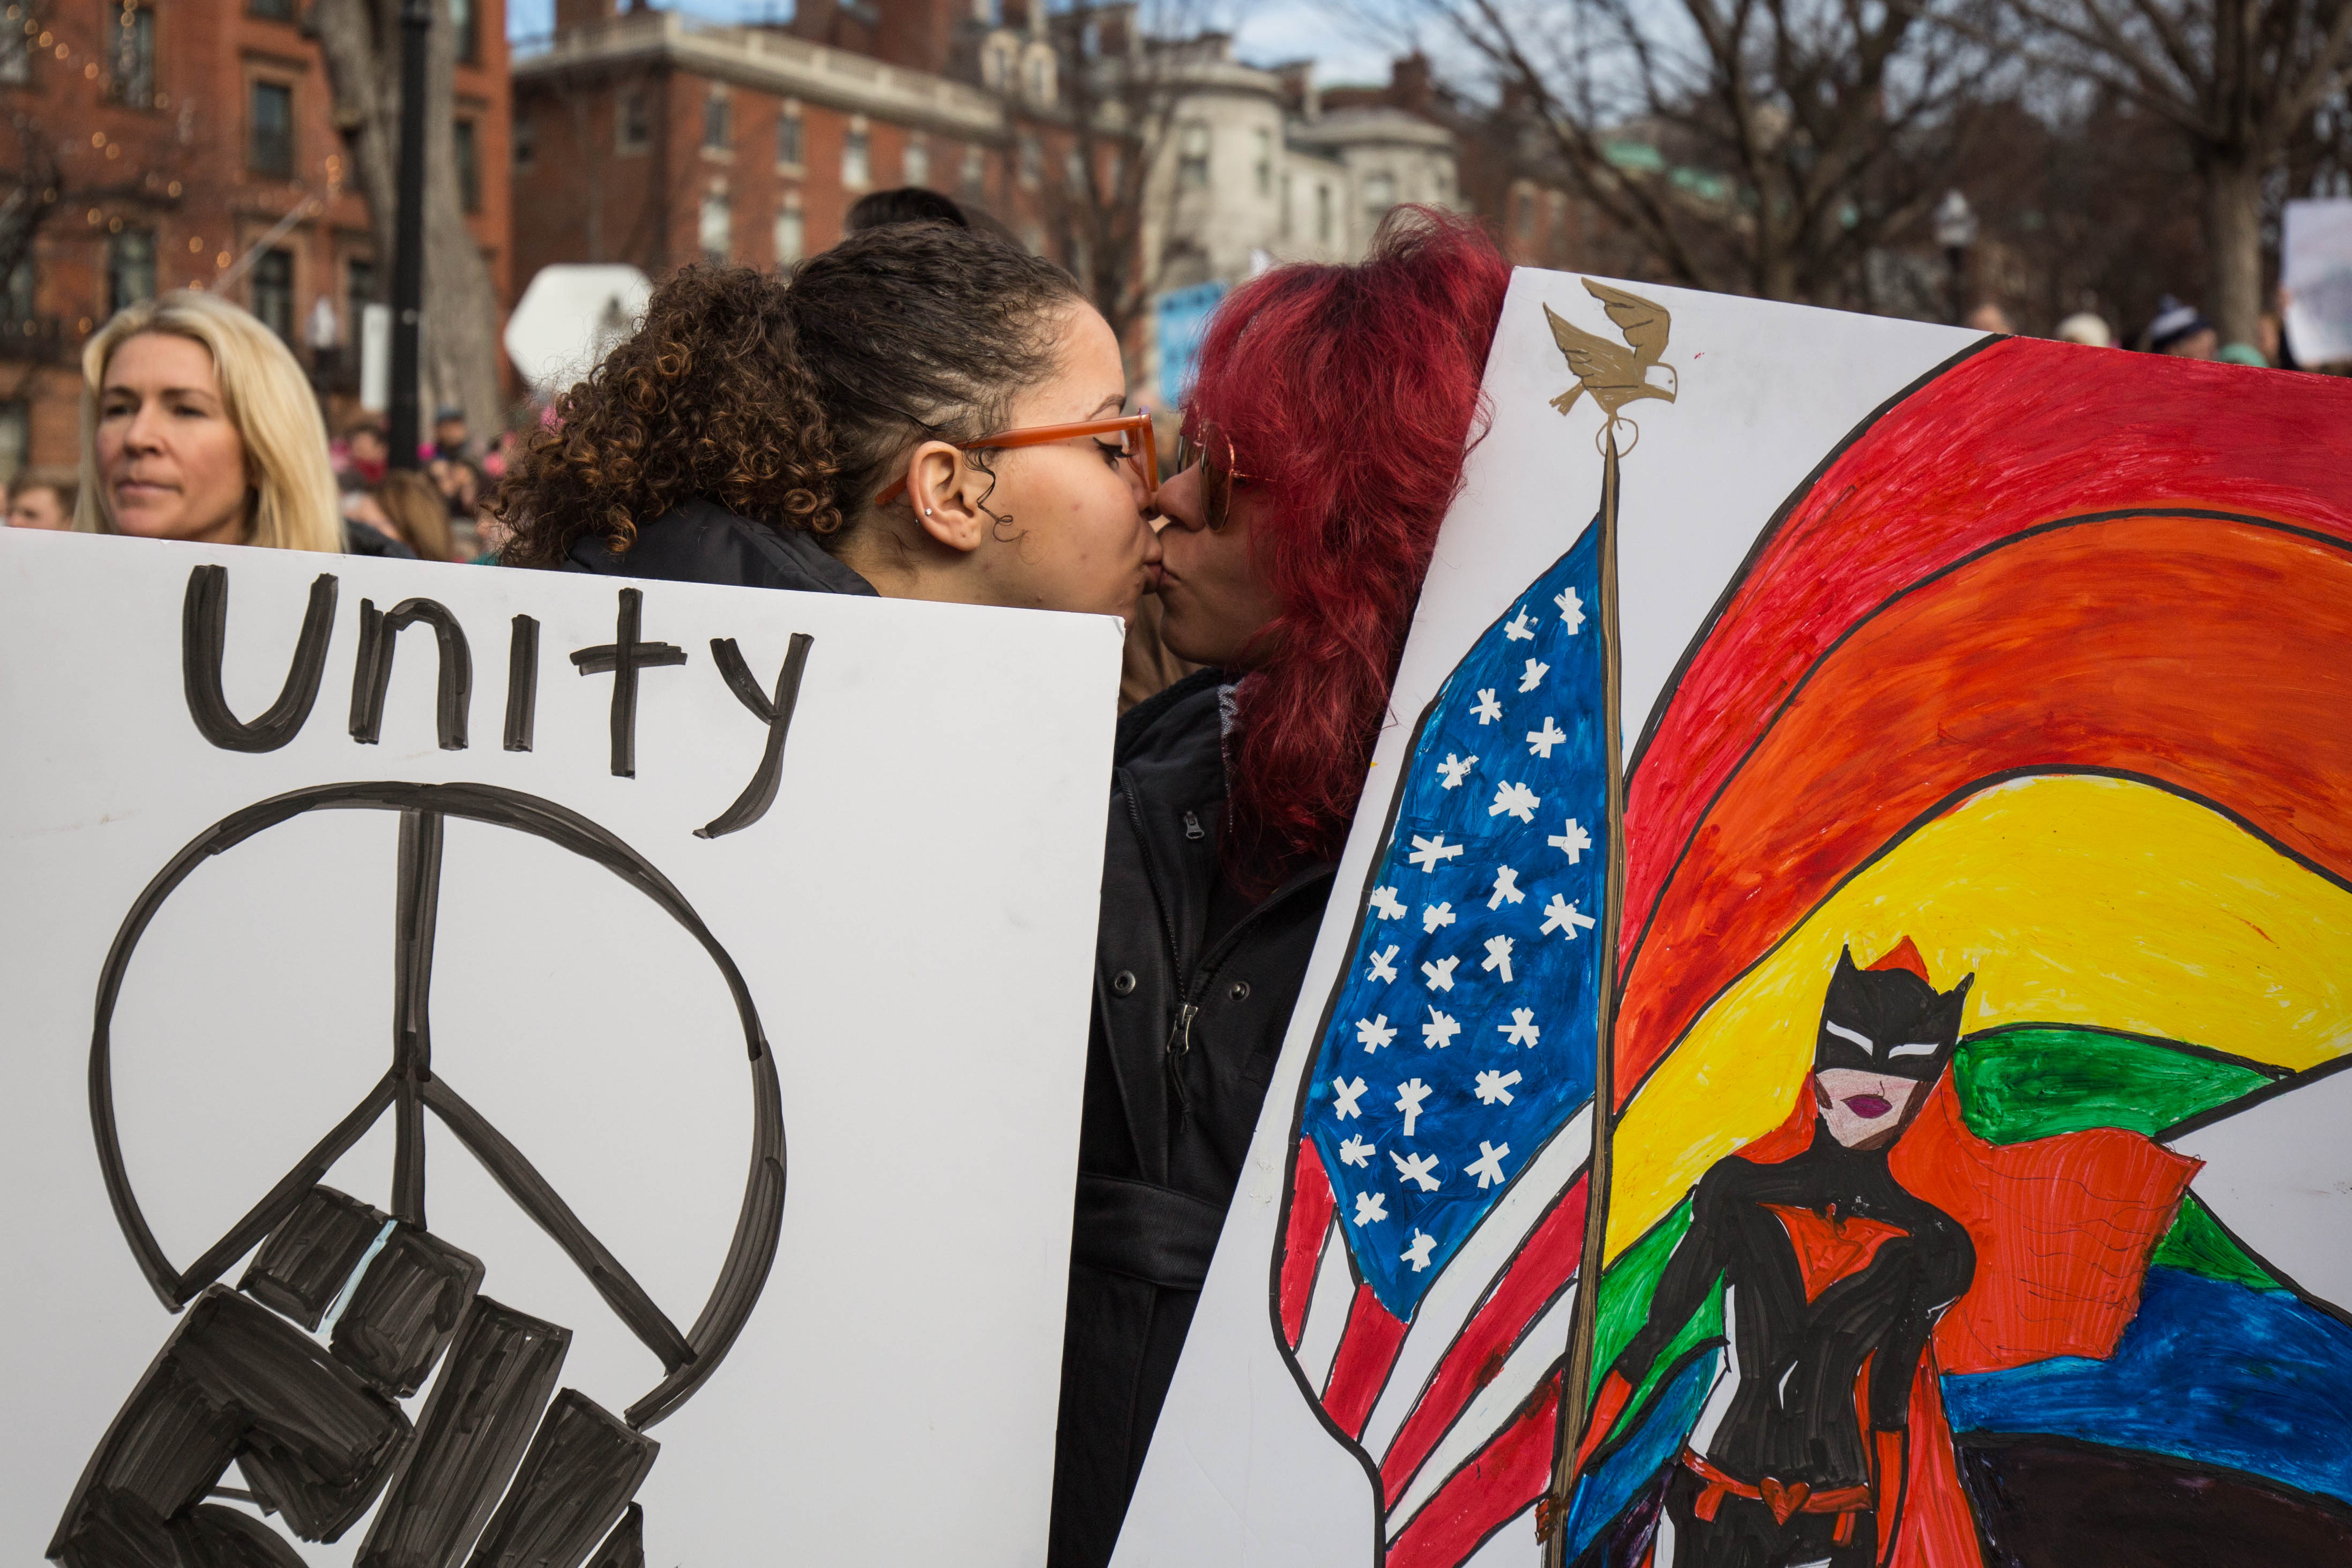 Audrey Guerrero, 25, of Boston, and Angie Egea, 27, of Colombia, kiss during the Boston Women's March on Jan. 21, 2017. (Photo by Alastair Pike)